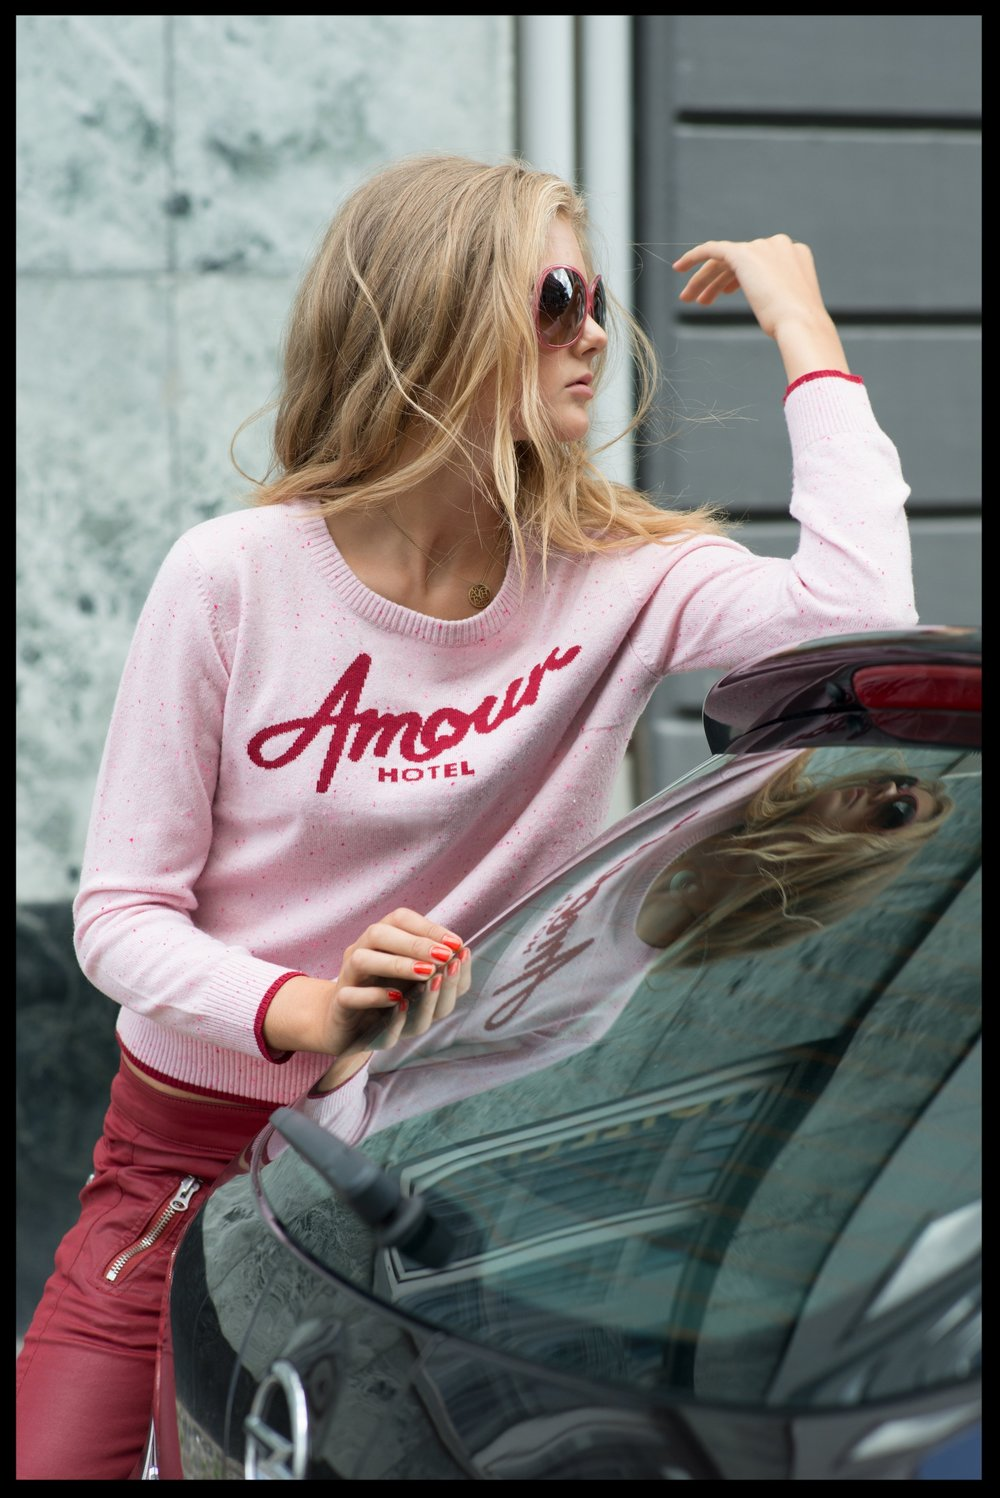 Amour Hotel Sweater